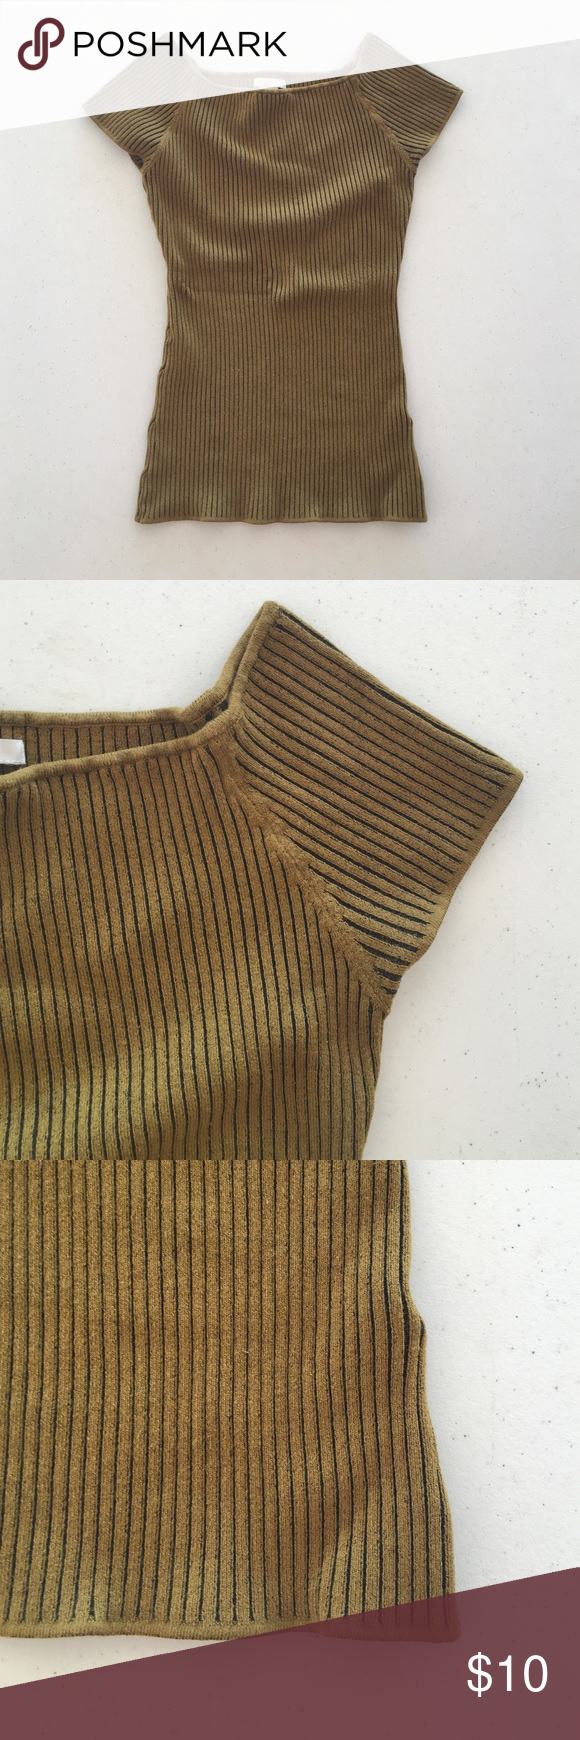 H&M top Mustard colored top. Details in pictures. No trades H&M Tops